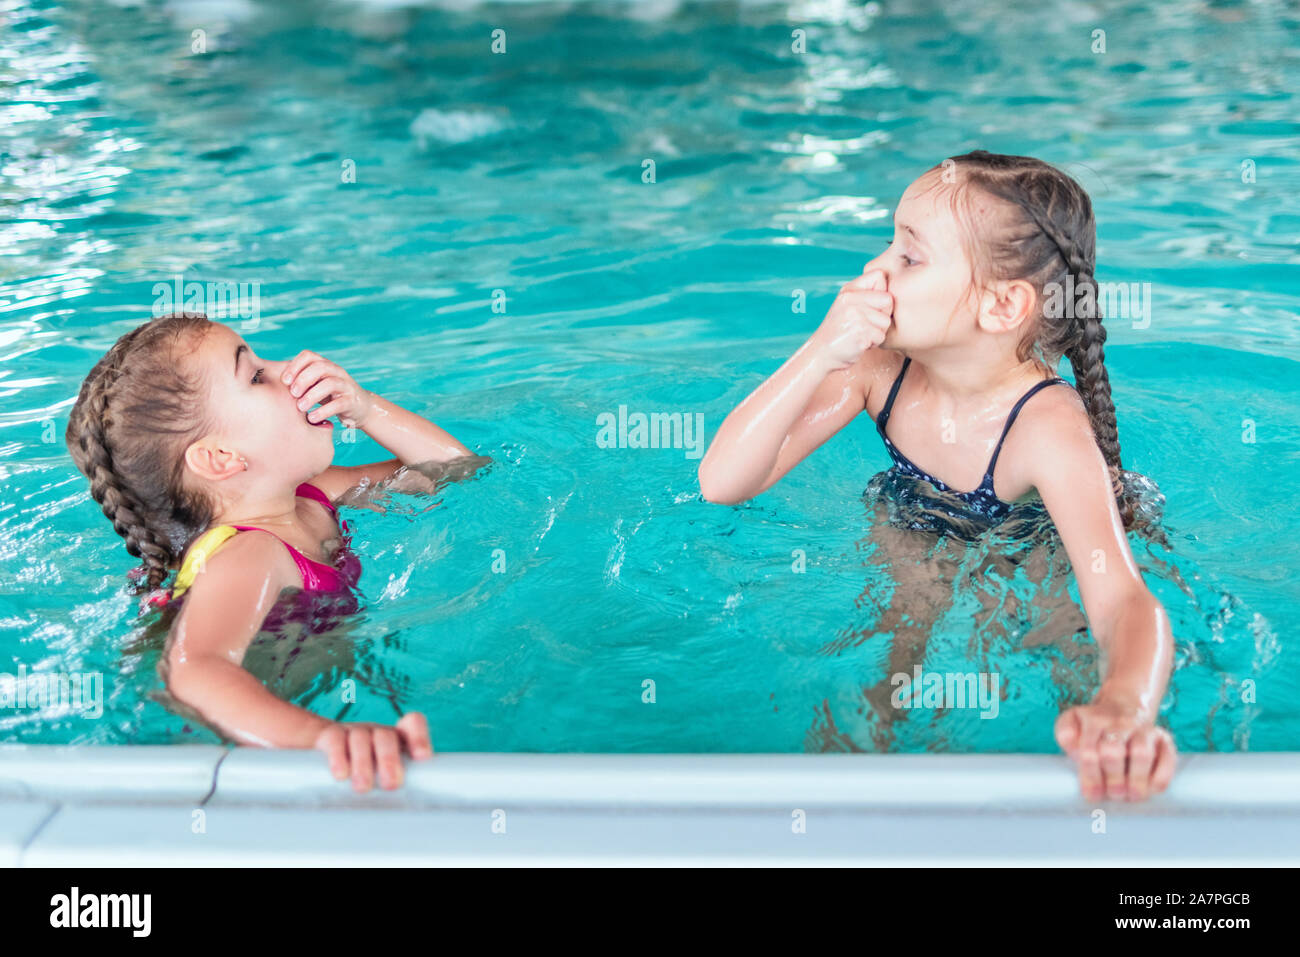 Two little girls swim in the pool. Two friends in the pool.Children playing in pool. Two little girls having fun in the pool. Stock Photo